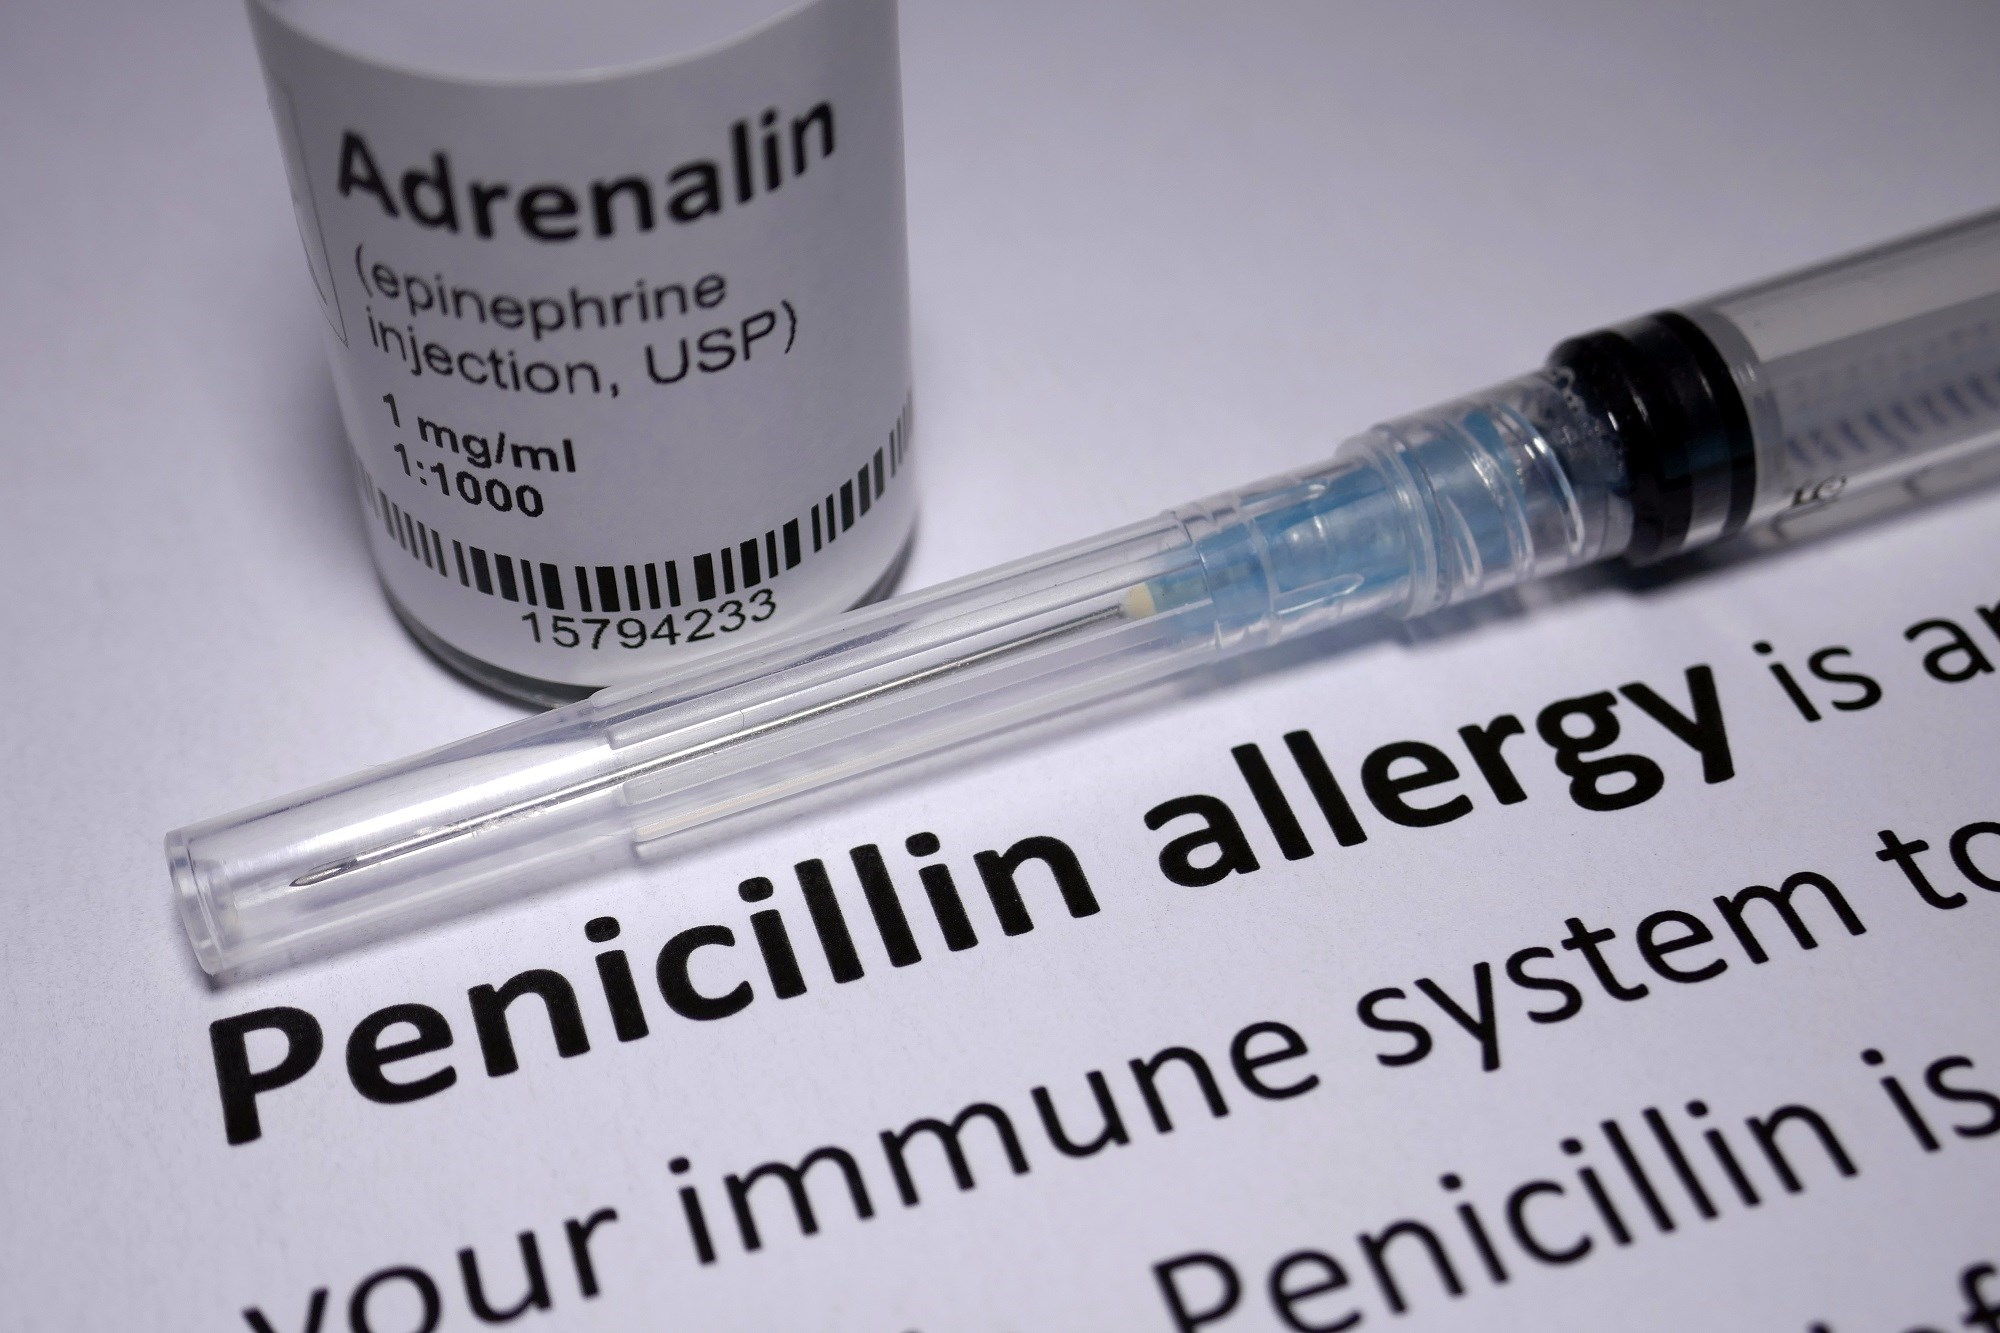 Best Practices for Penicillin Allergy Evaluation